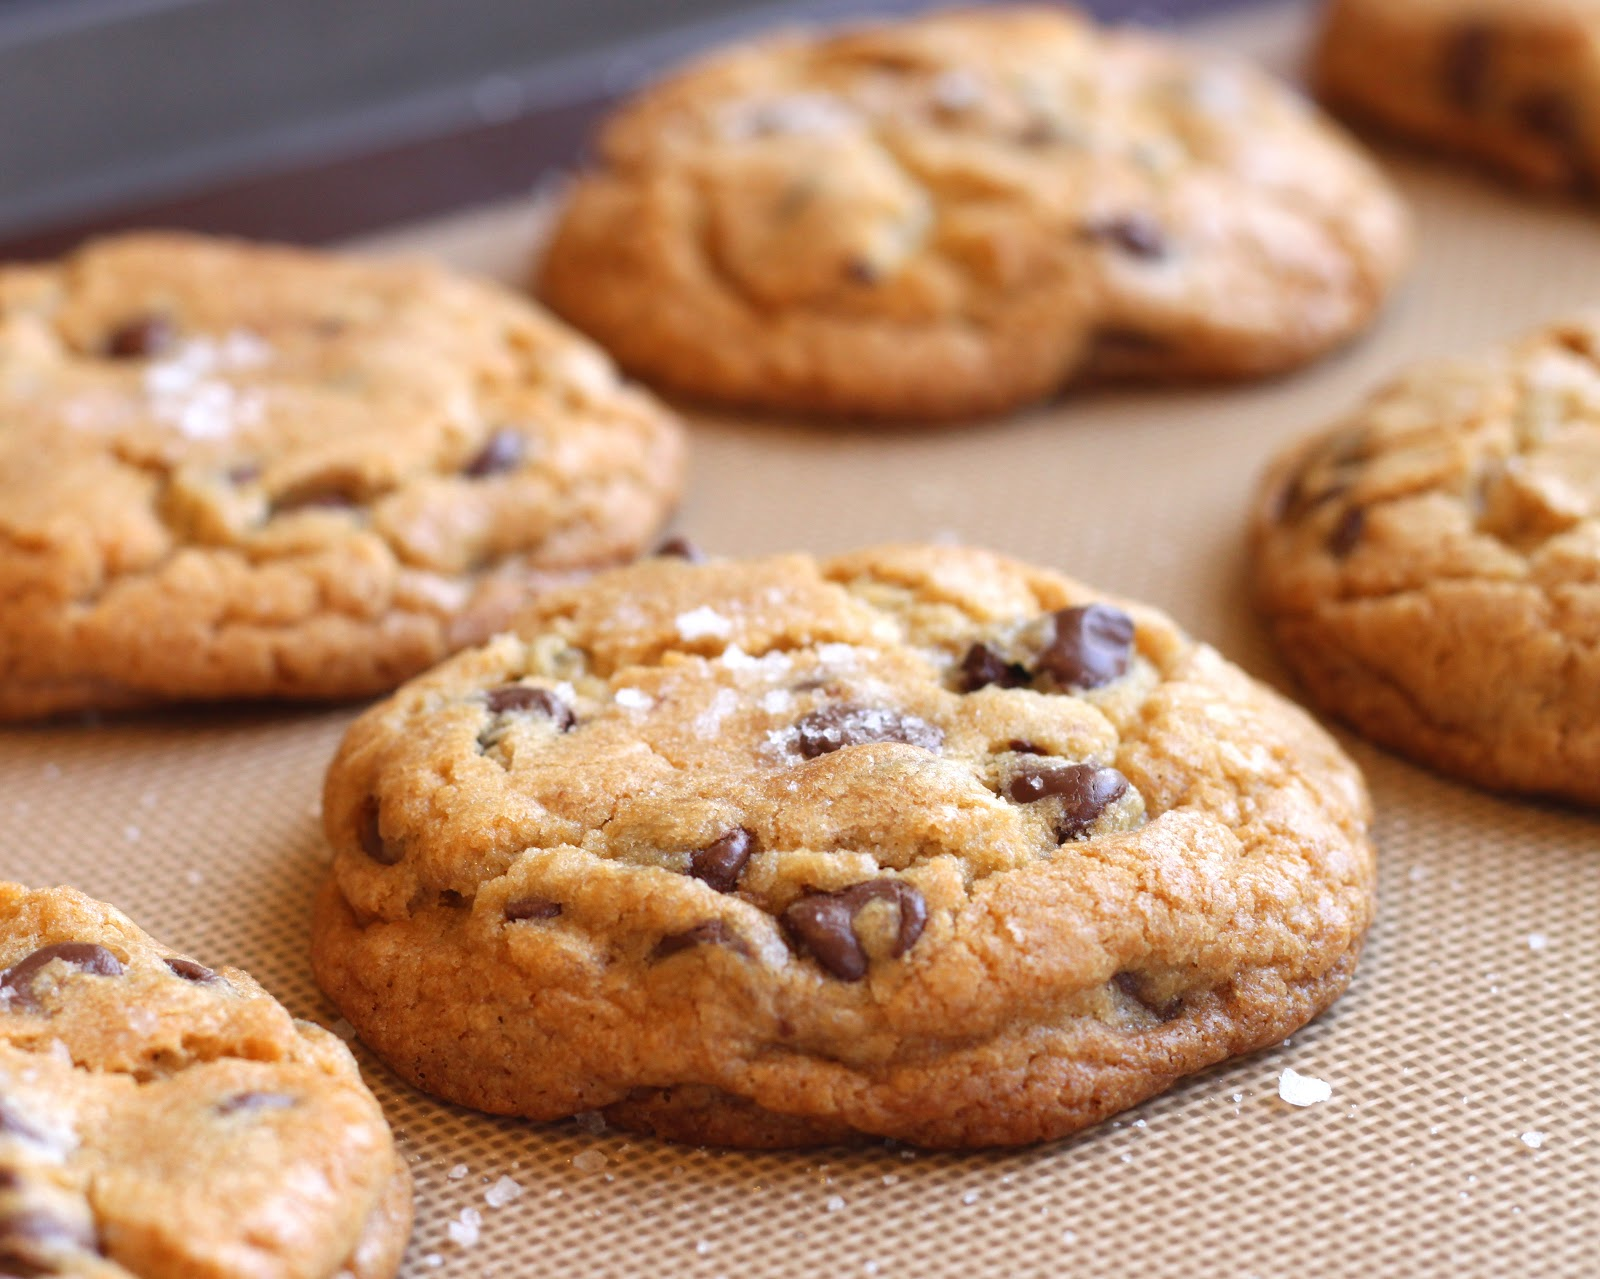 The Cilantropist: Recipe Update: Jacques Torres Chocolate Chip Cookies